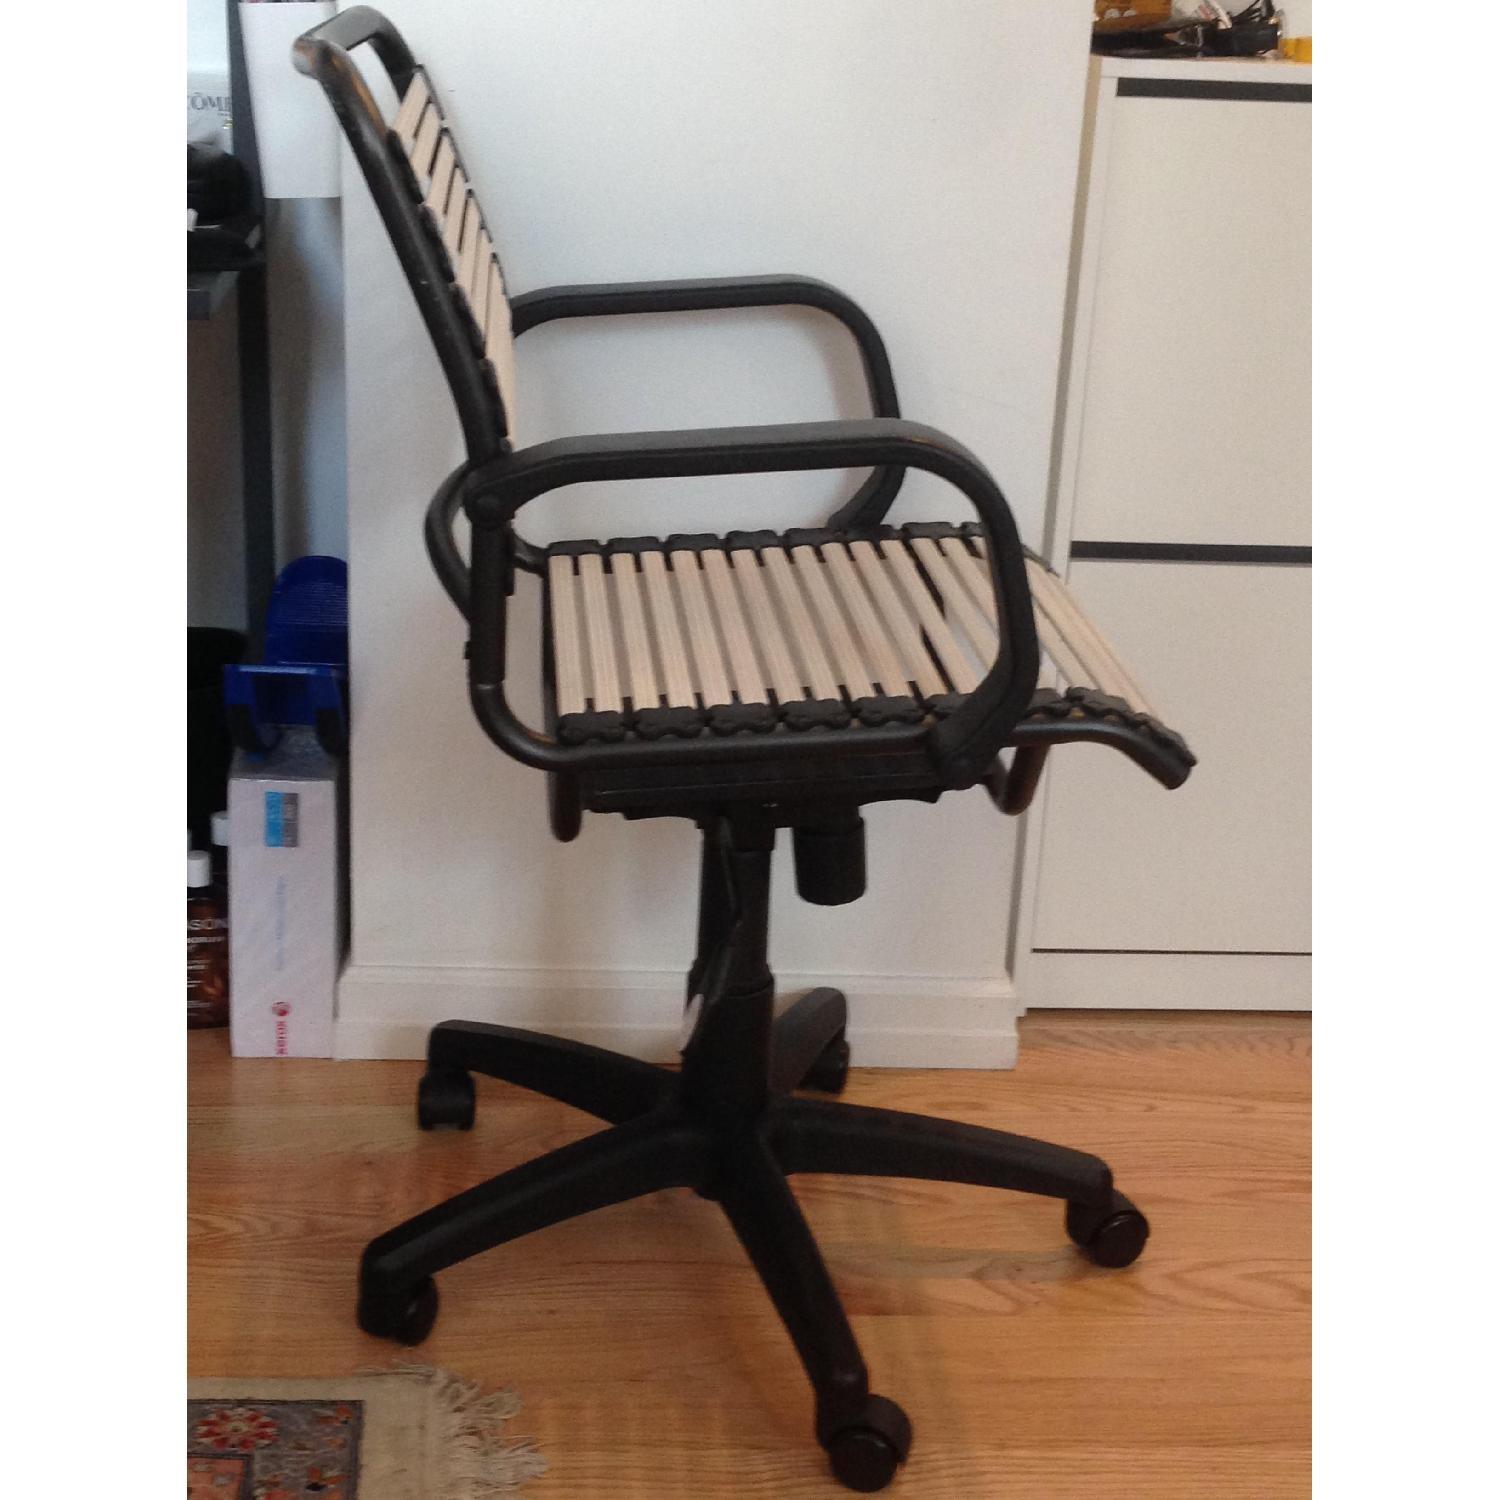 Container Store White Flat Bungee Office Chair w/ Arms - image-2